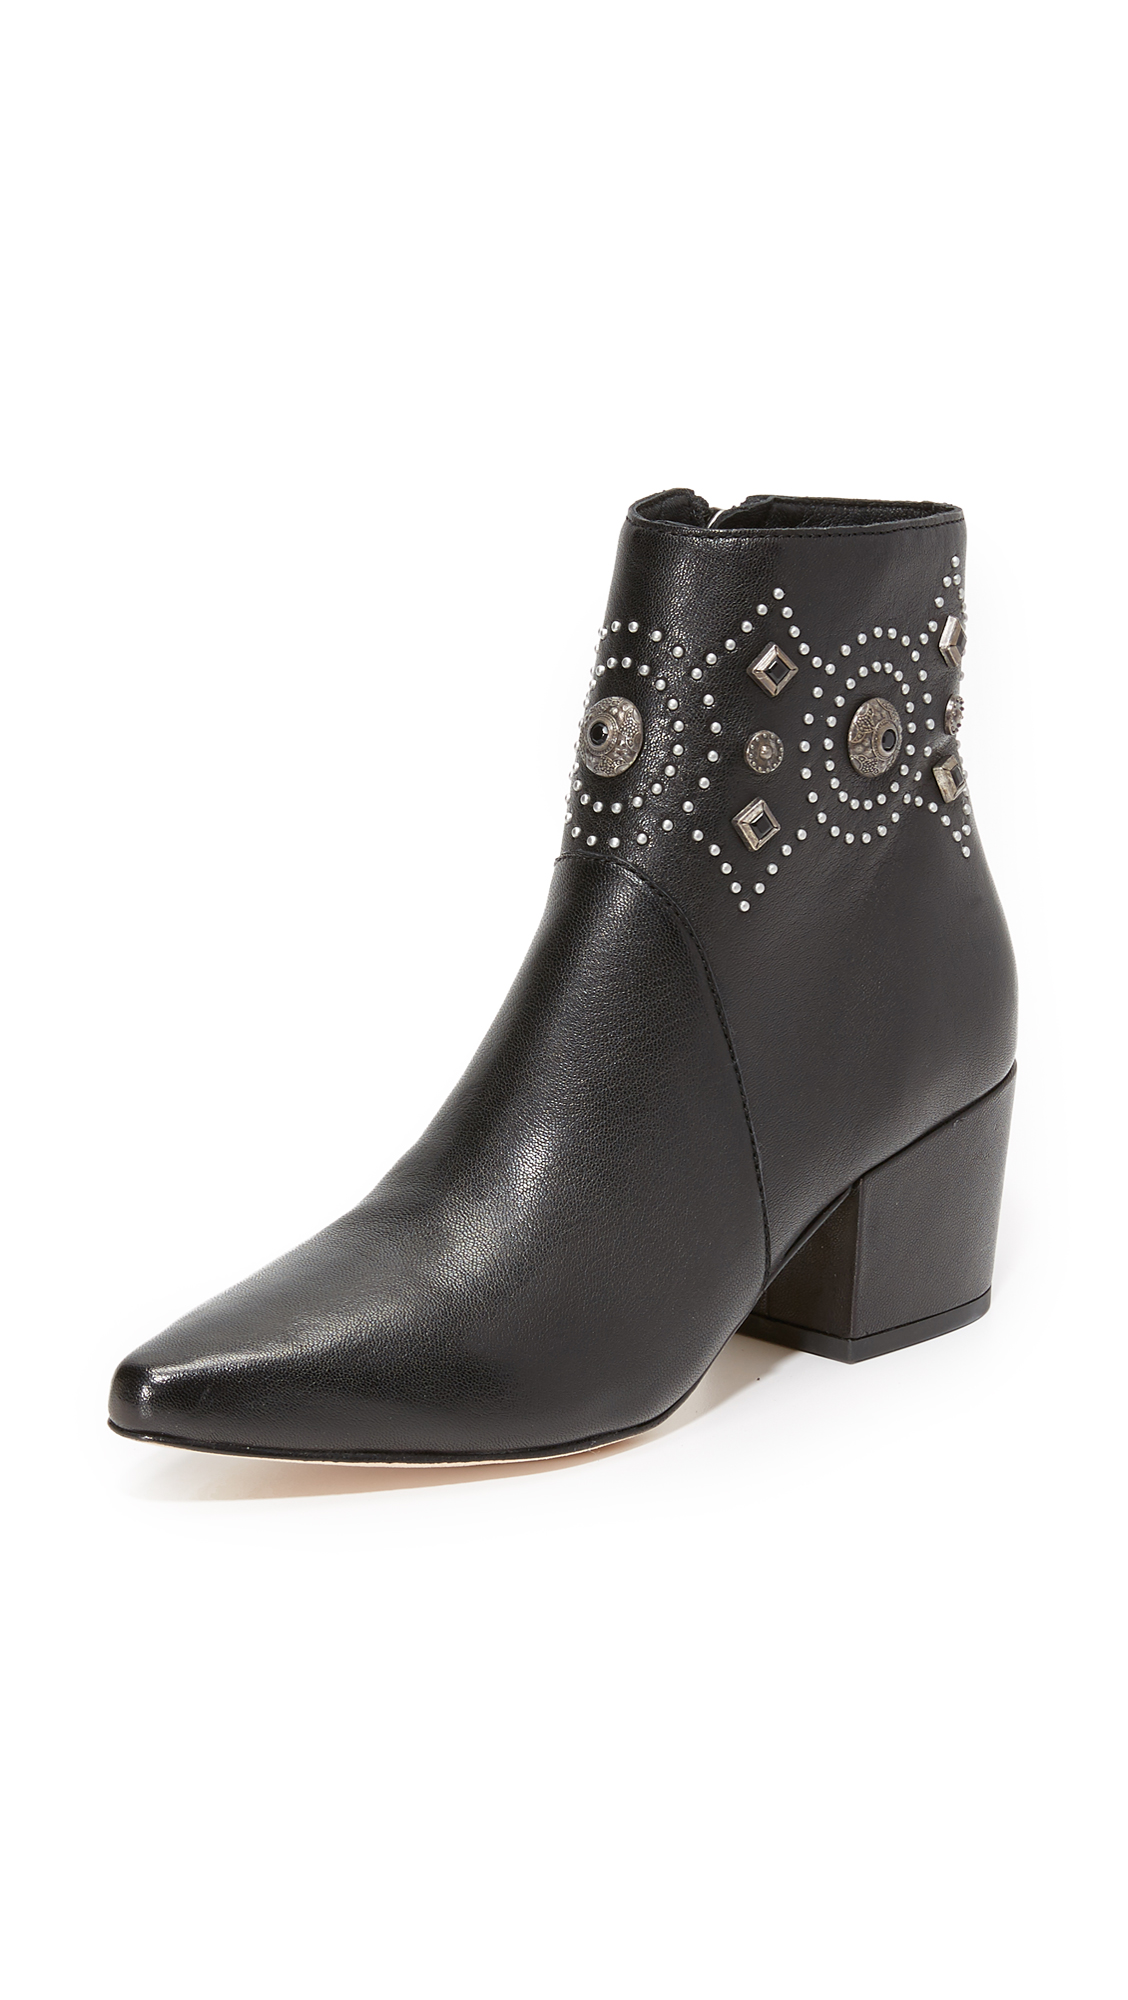 Sigerson Morrison Cailyn Booties - Black